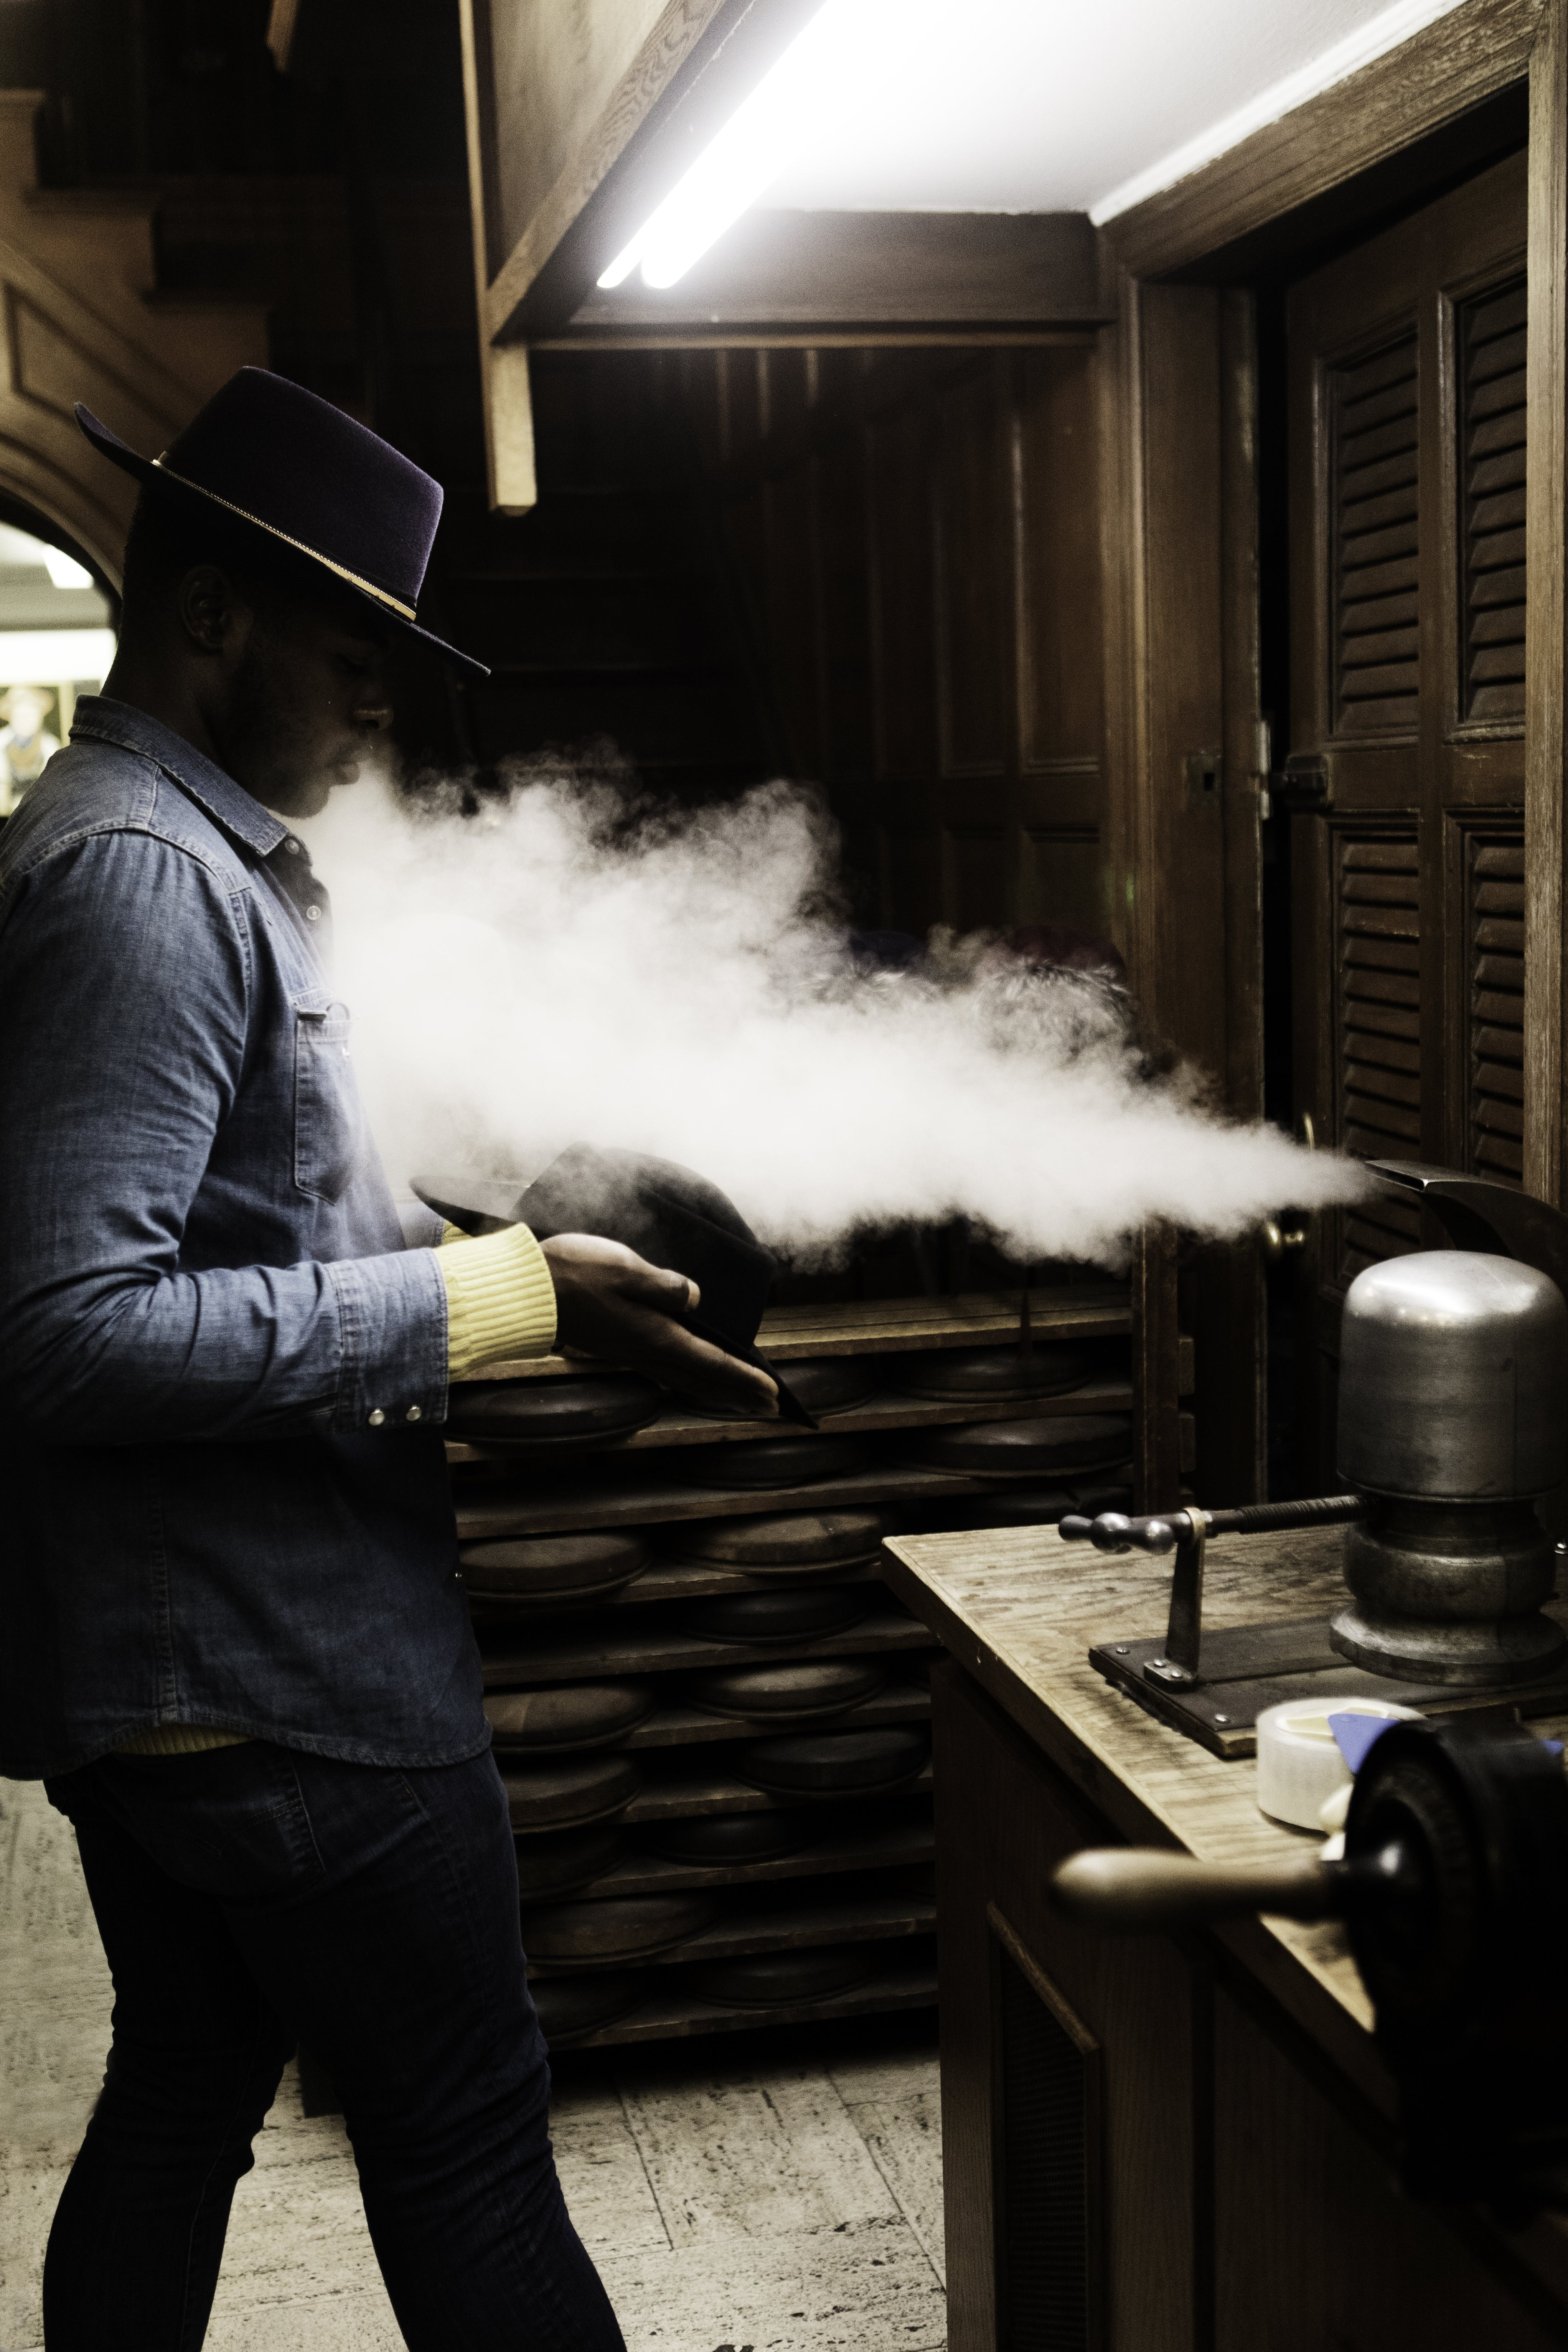 Man Standing with Steam Blowing Out